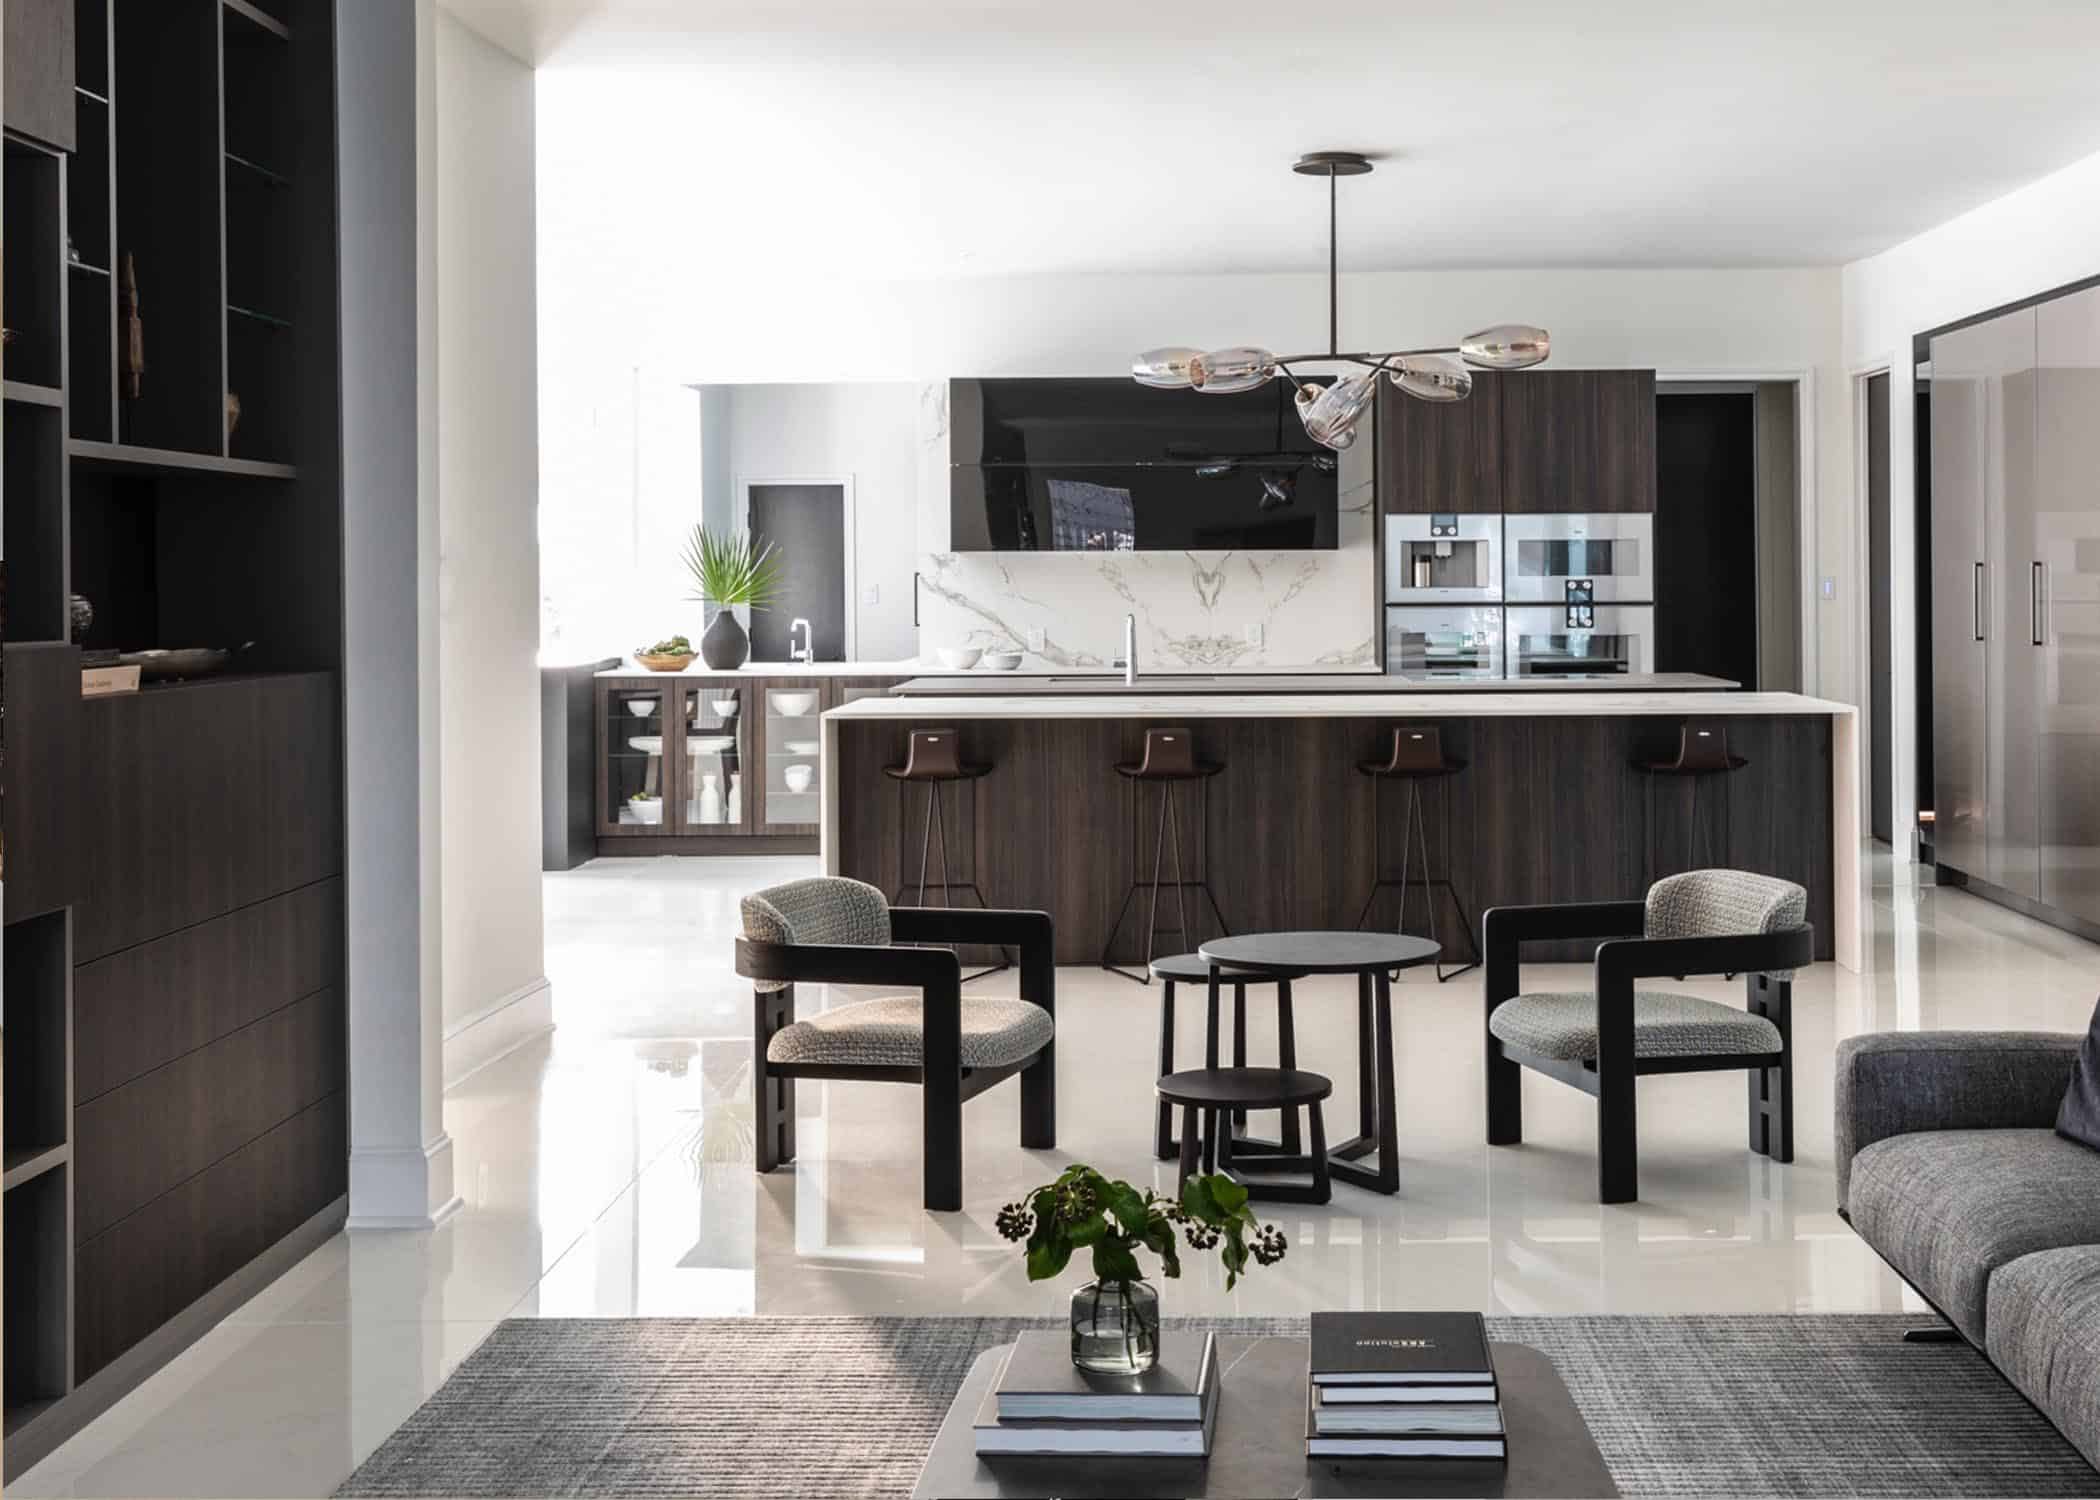 dark woods and light marble with both modern and traditional accents create the perfect kitchen for entertaining and daily living